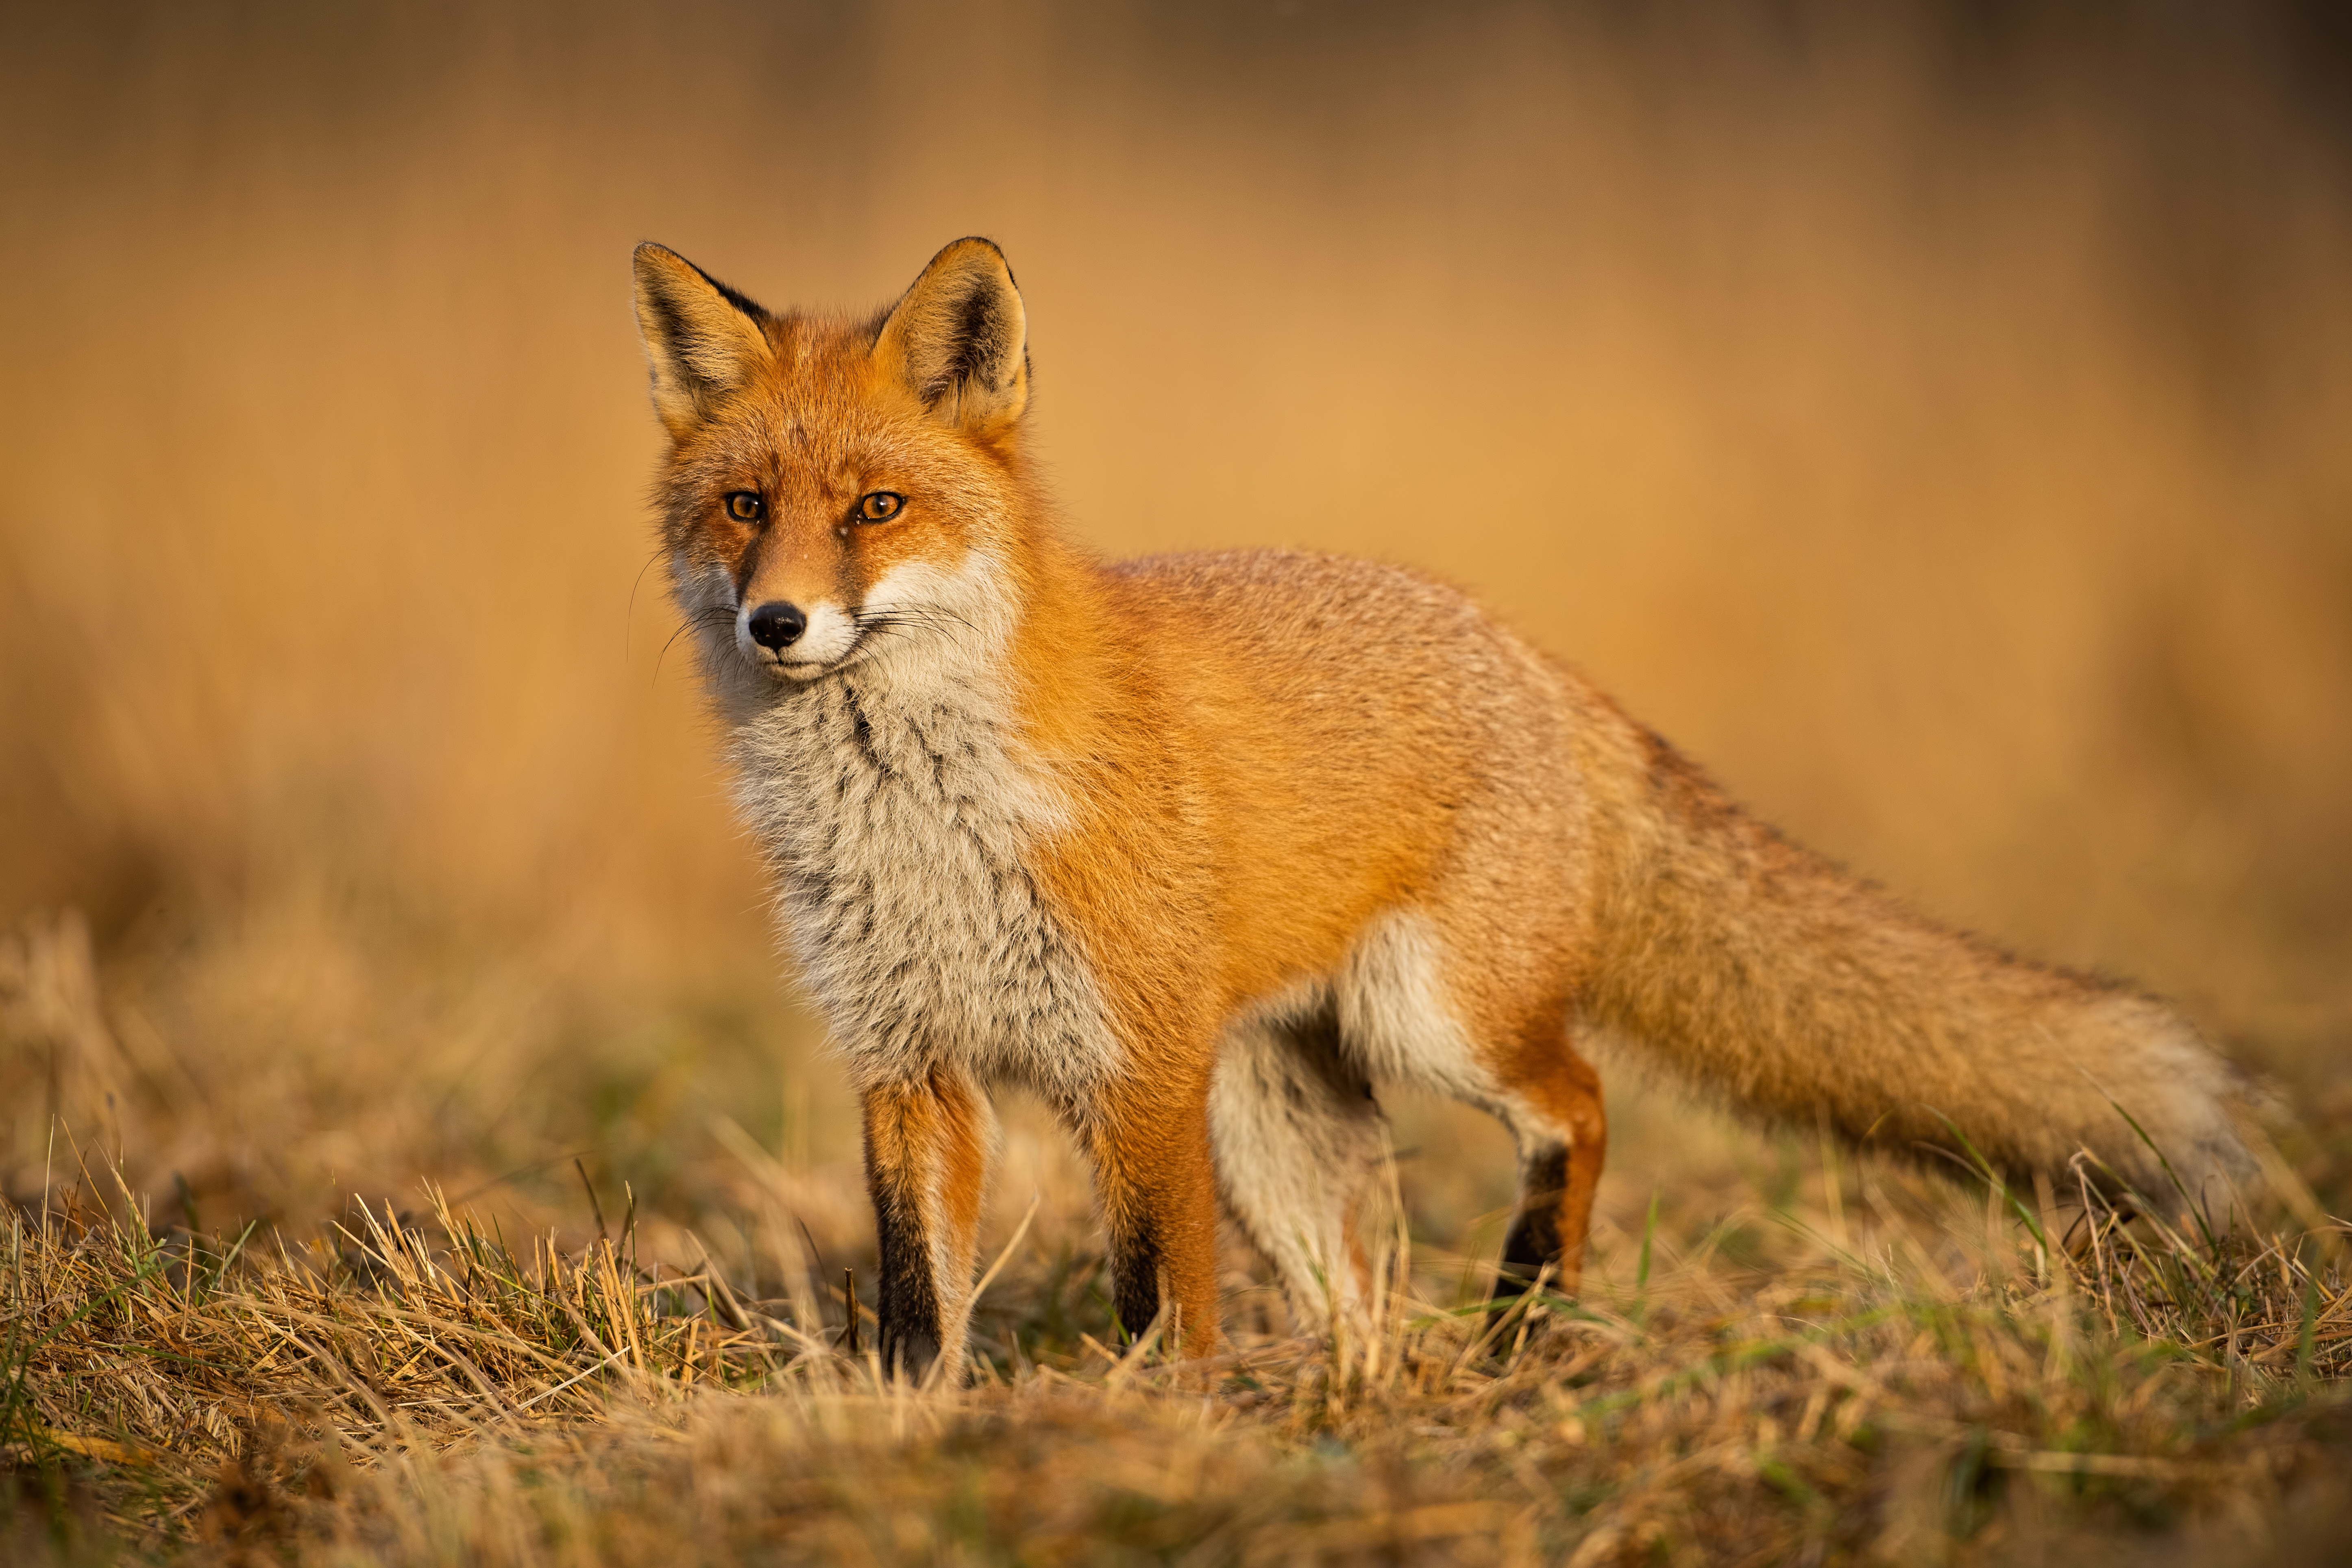 Wayne County man and wife attacked by fox on Monday